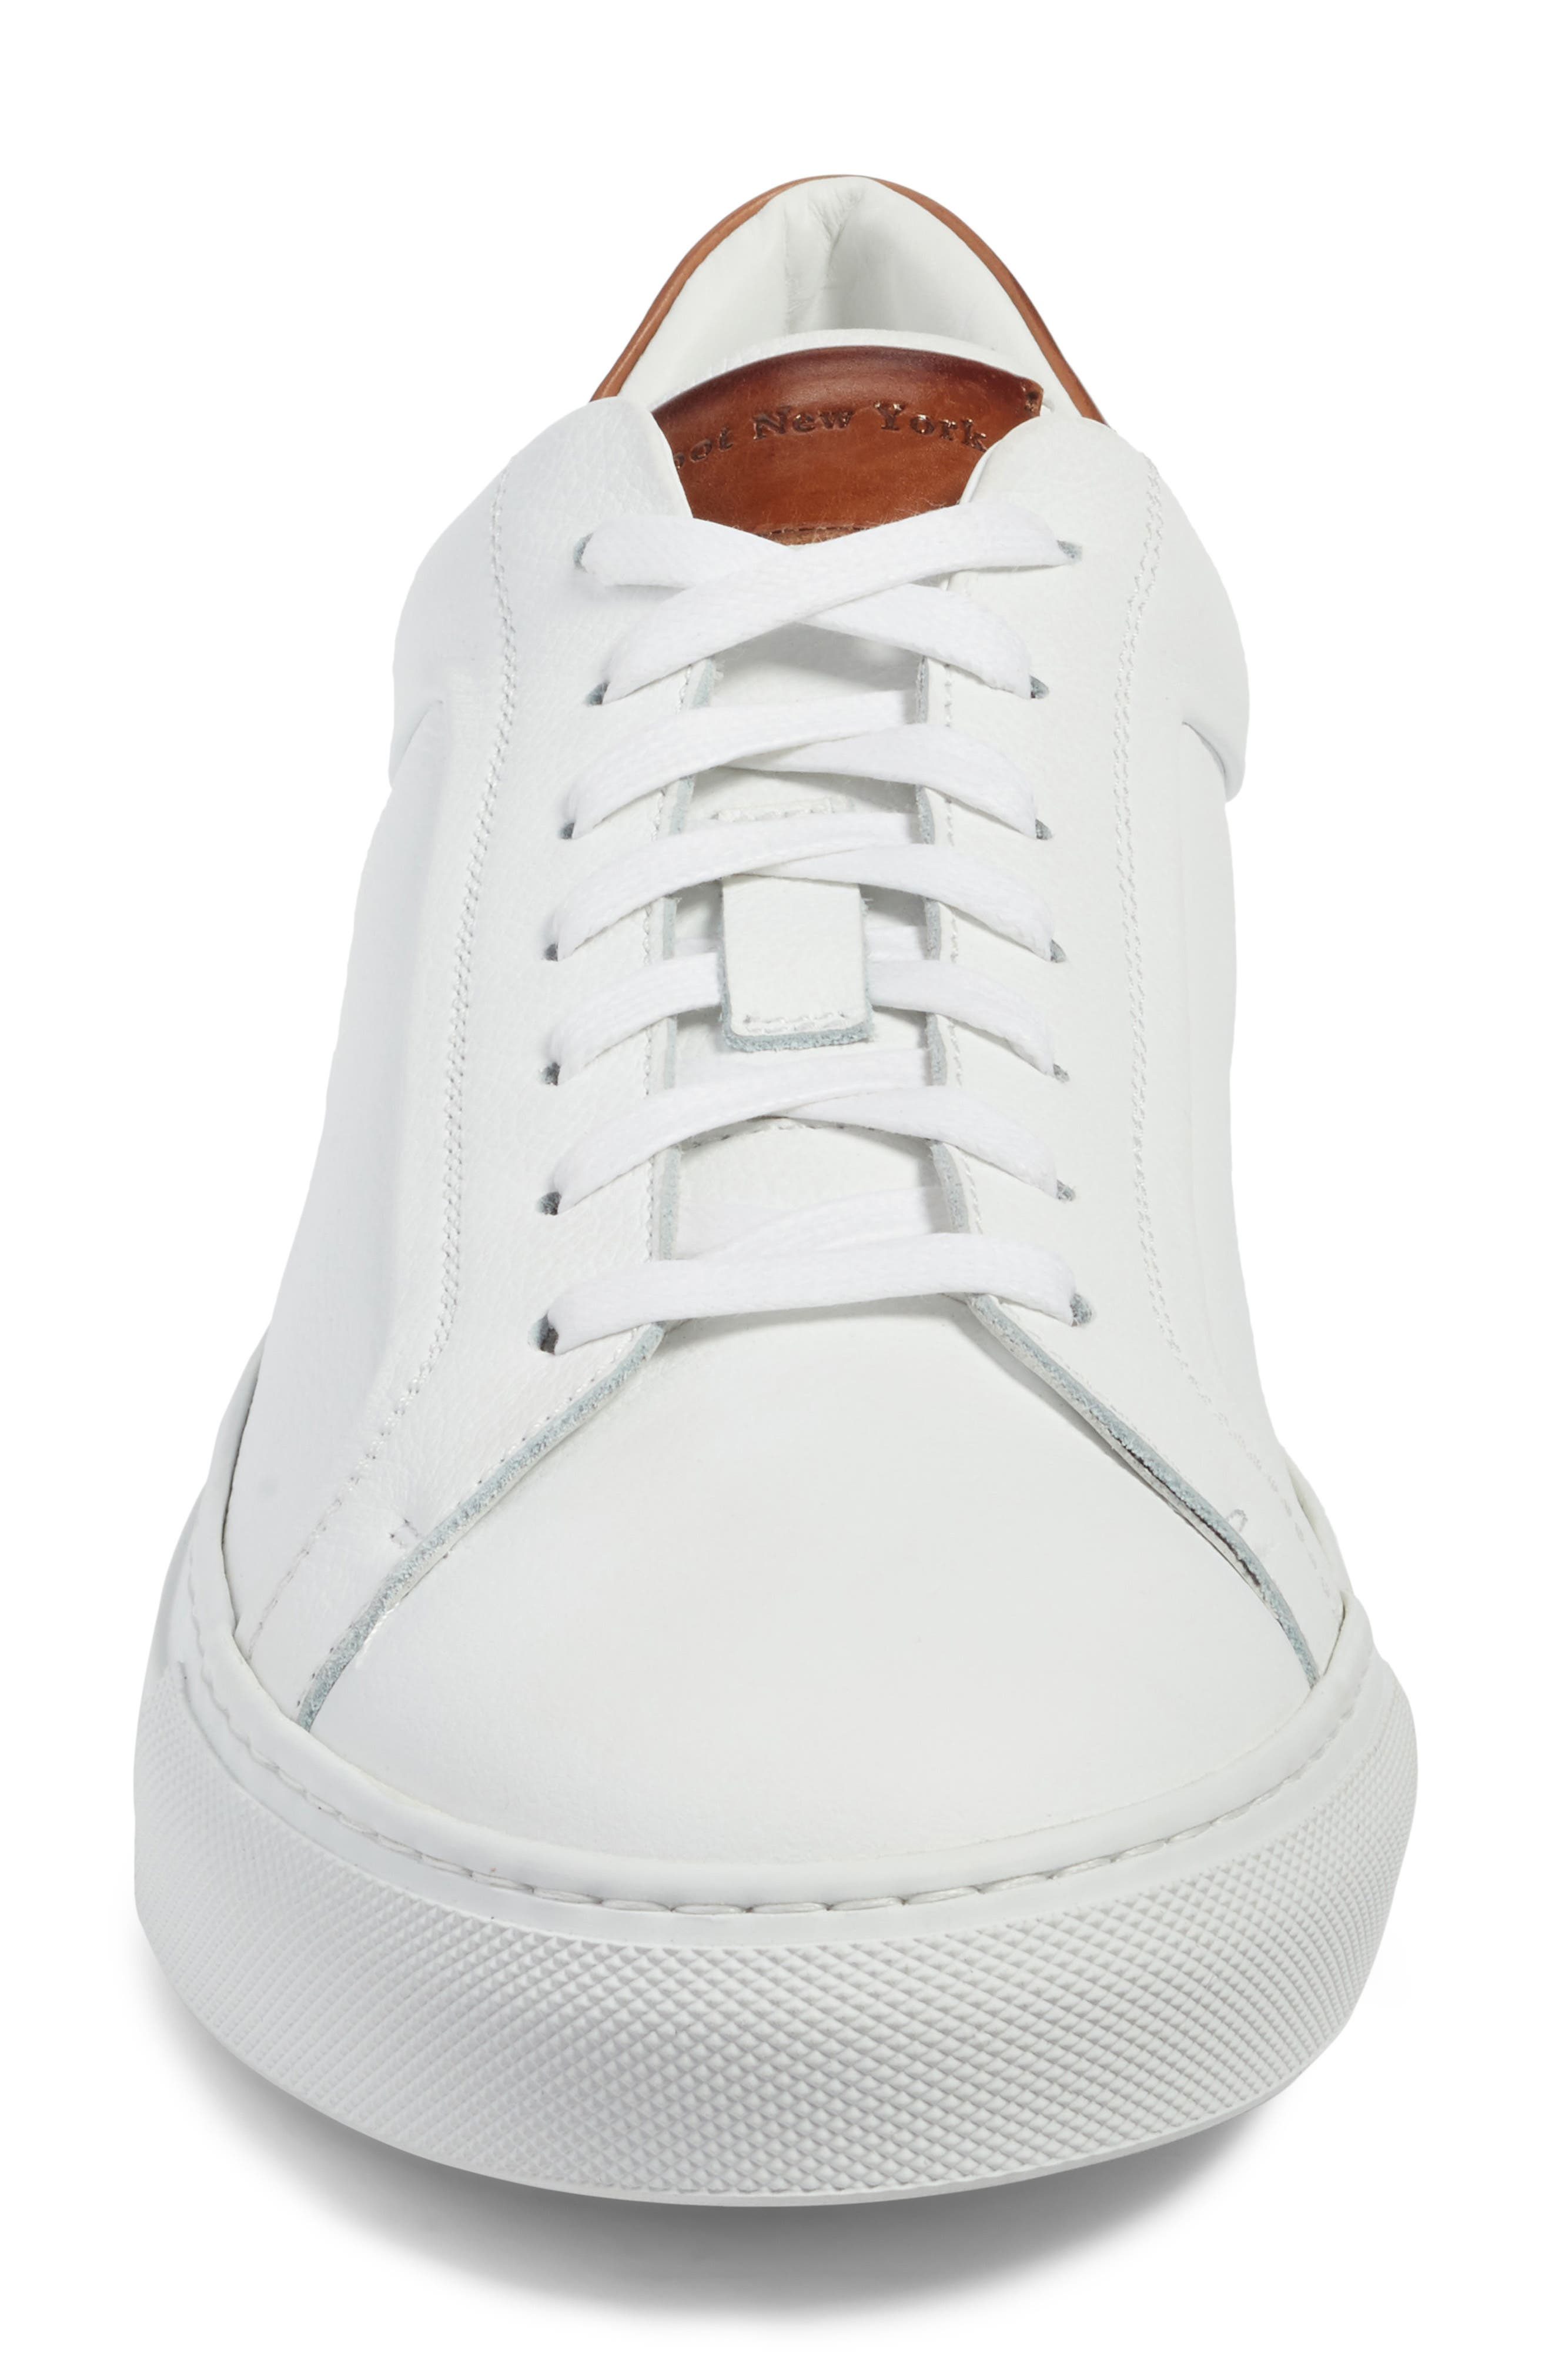 TO BOOT NEW YORK, Carlin Sneaker, Alternate thumbnail 4, color, WHITE/ TAN LEATHER